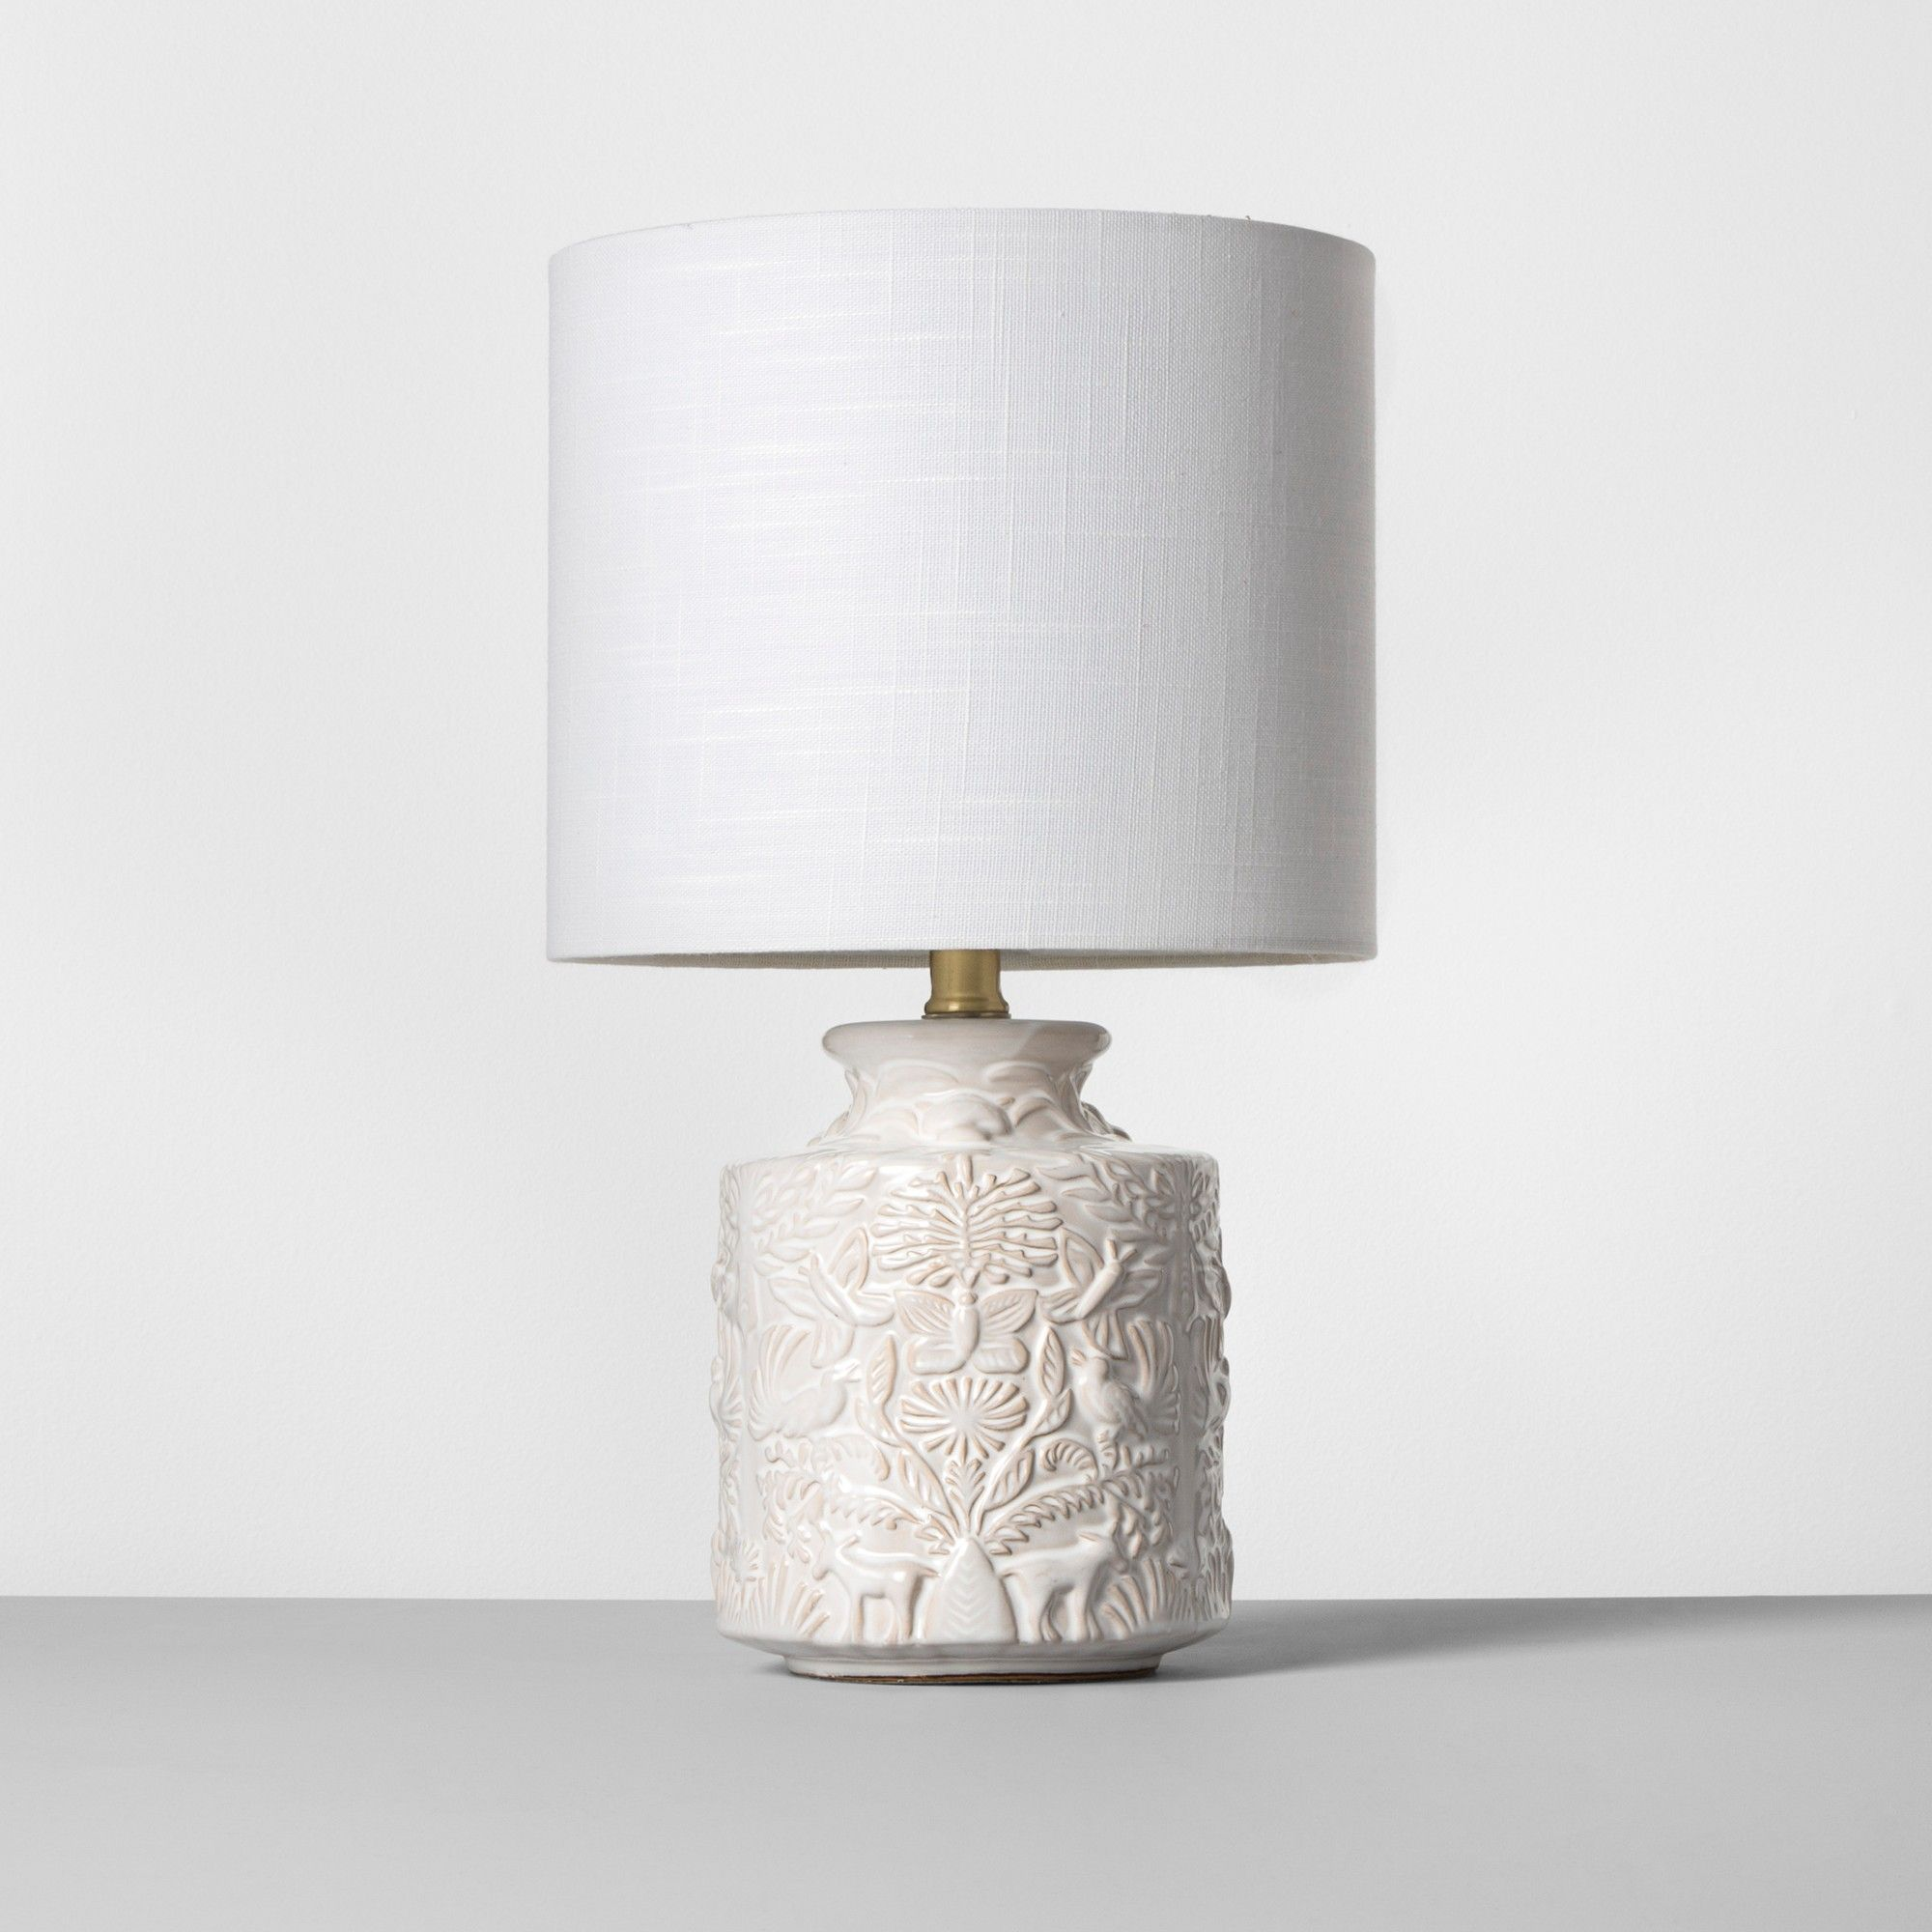 Ceramic Table Lamp White - Opalhouse | Products in 2019 | Pinterest ...